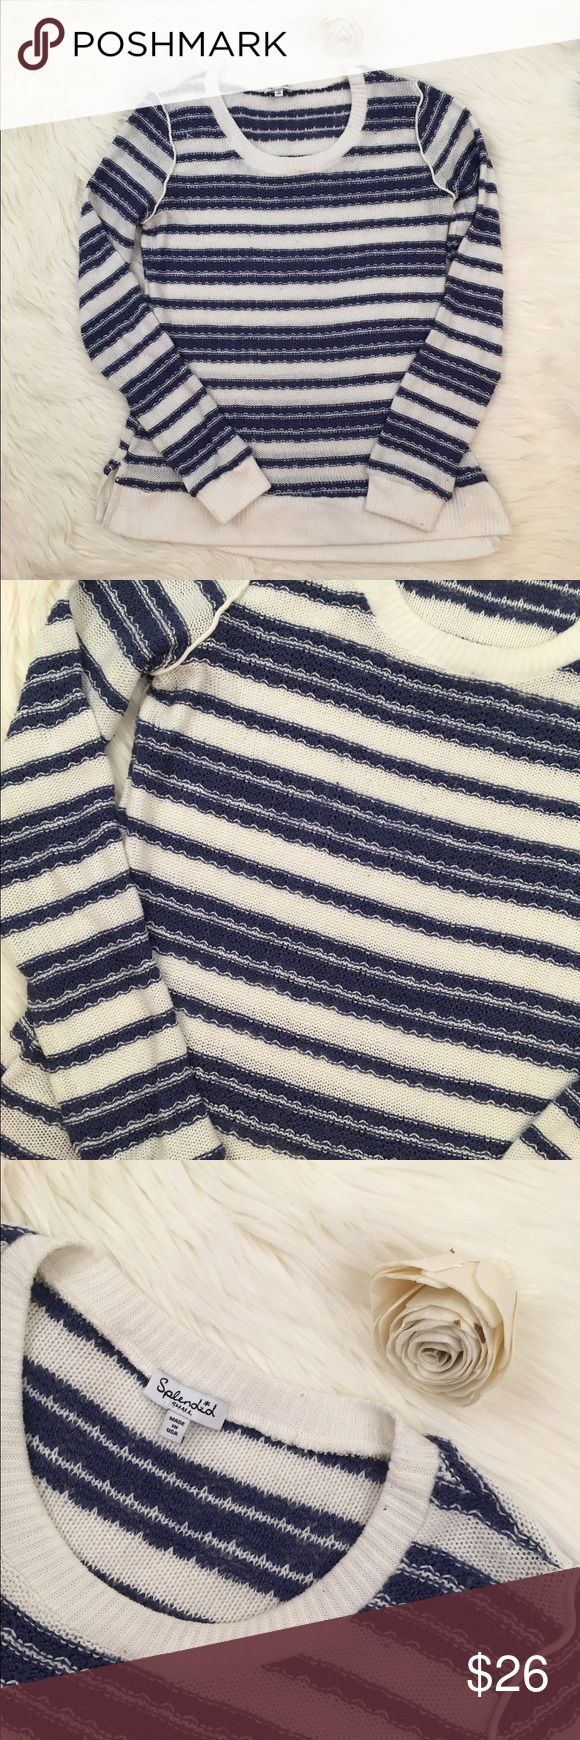 Splendid Blue & White Striped Crew Neck Sweater Splendid blue and white long sleeve striped knit sweater. Lightly used condition. Robbed detail along shoulders. Brand sold at Anthropologie and Nordstrom. Anthropologie Sweaters Crew & Scoop Necks